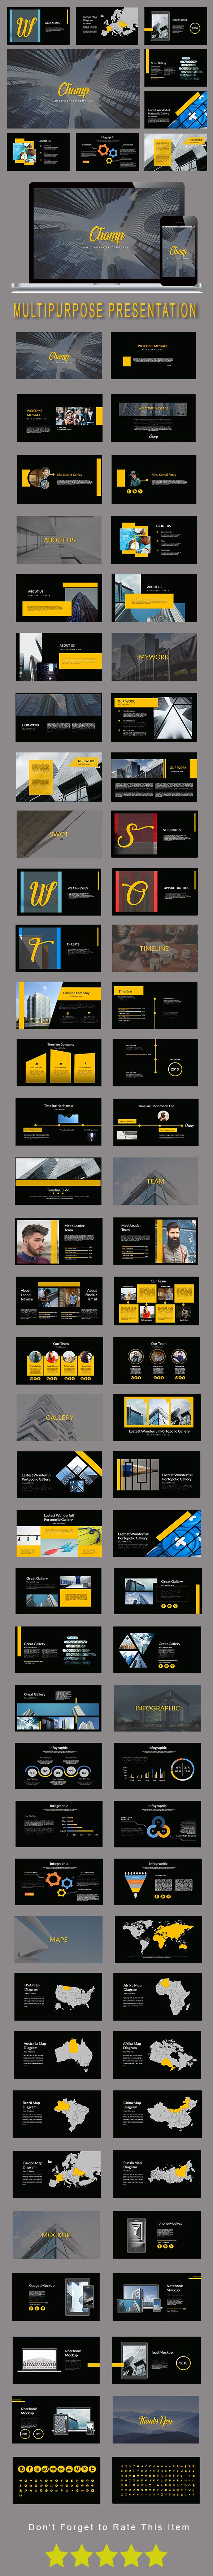 Champ Multipurpose Powerpoint Template